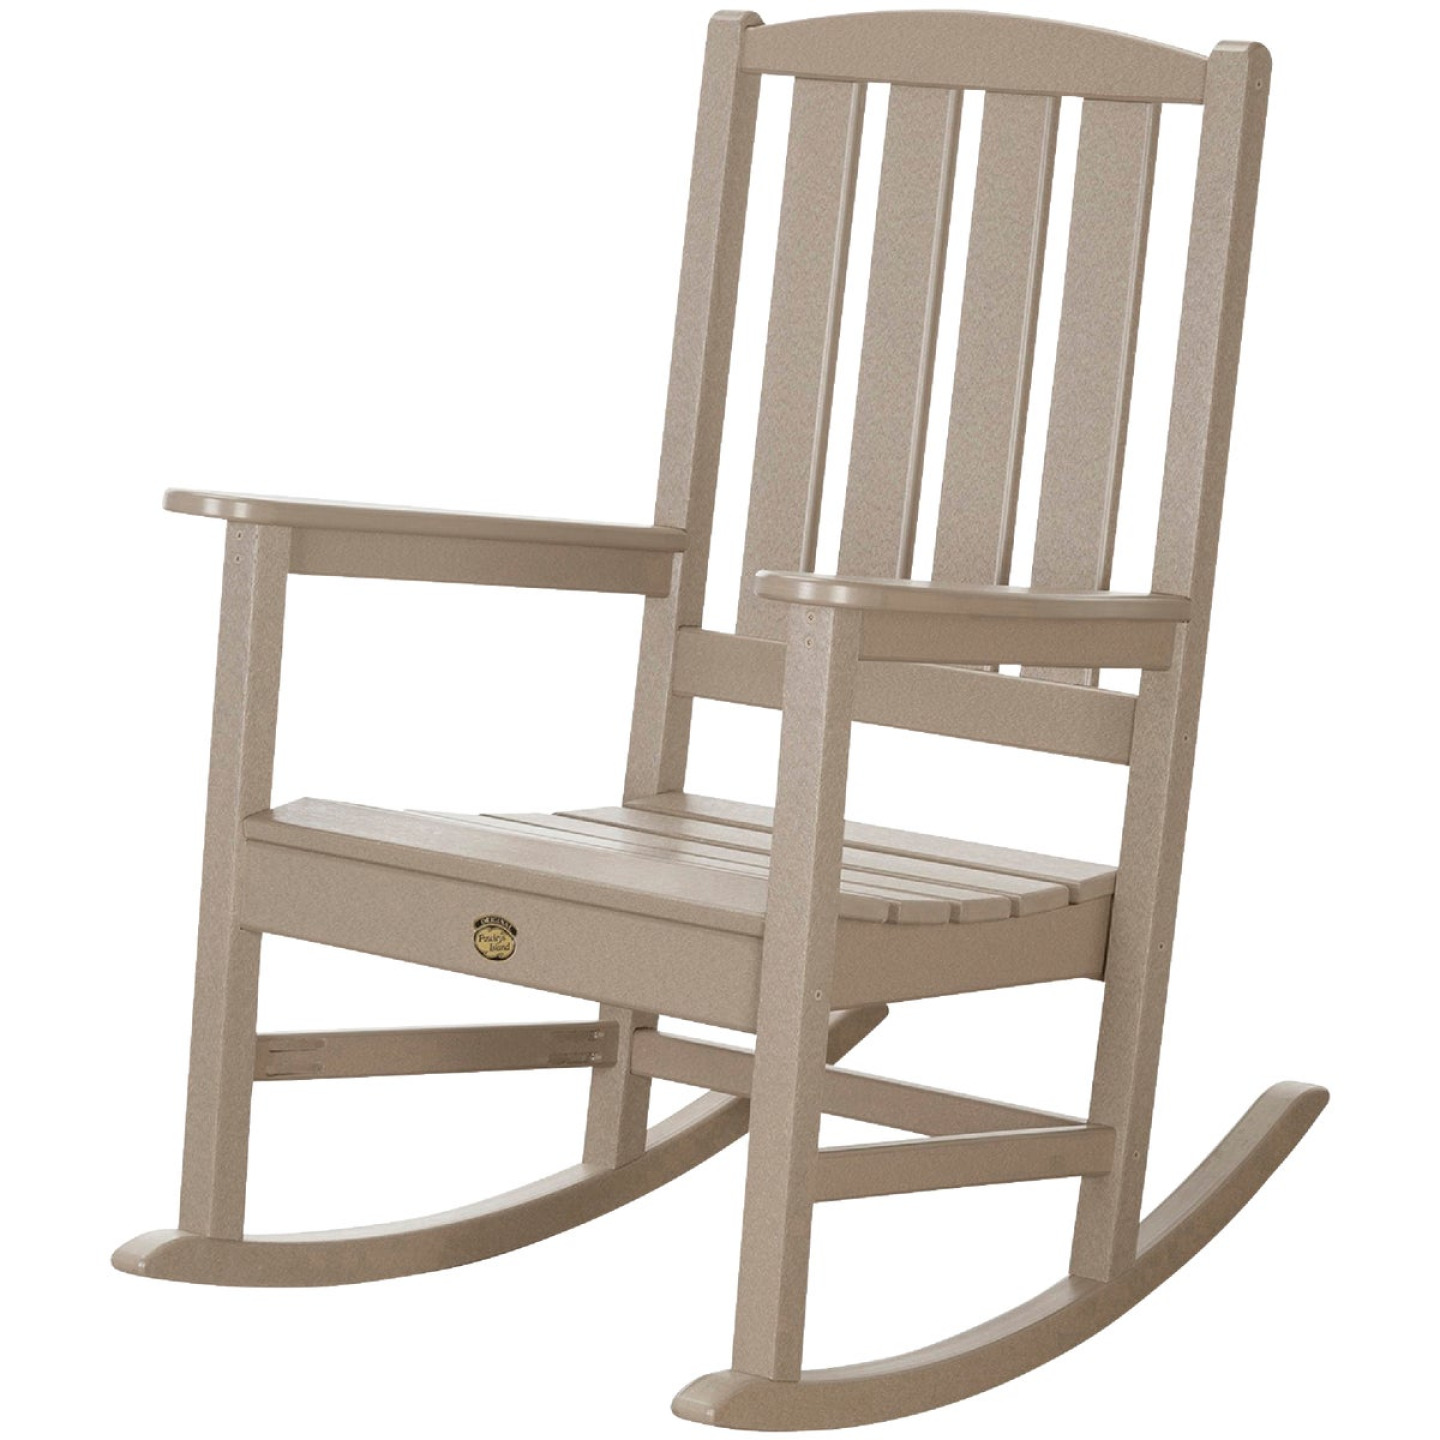 Pawley's Island Silver Line Tan Poly Porch Rocking Chair Image 1